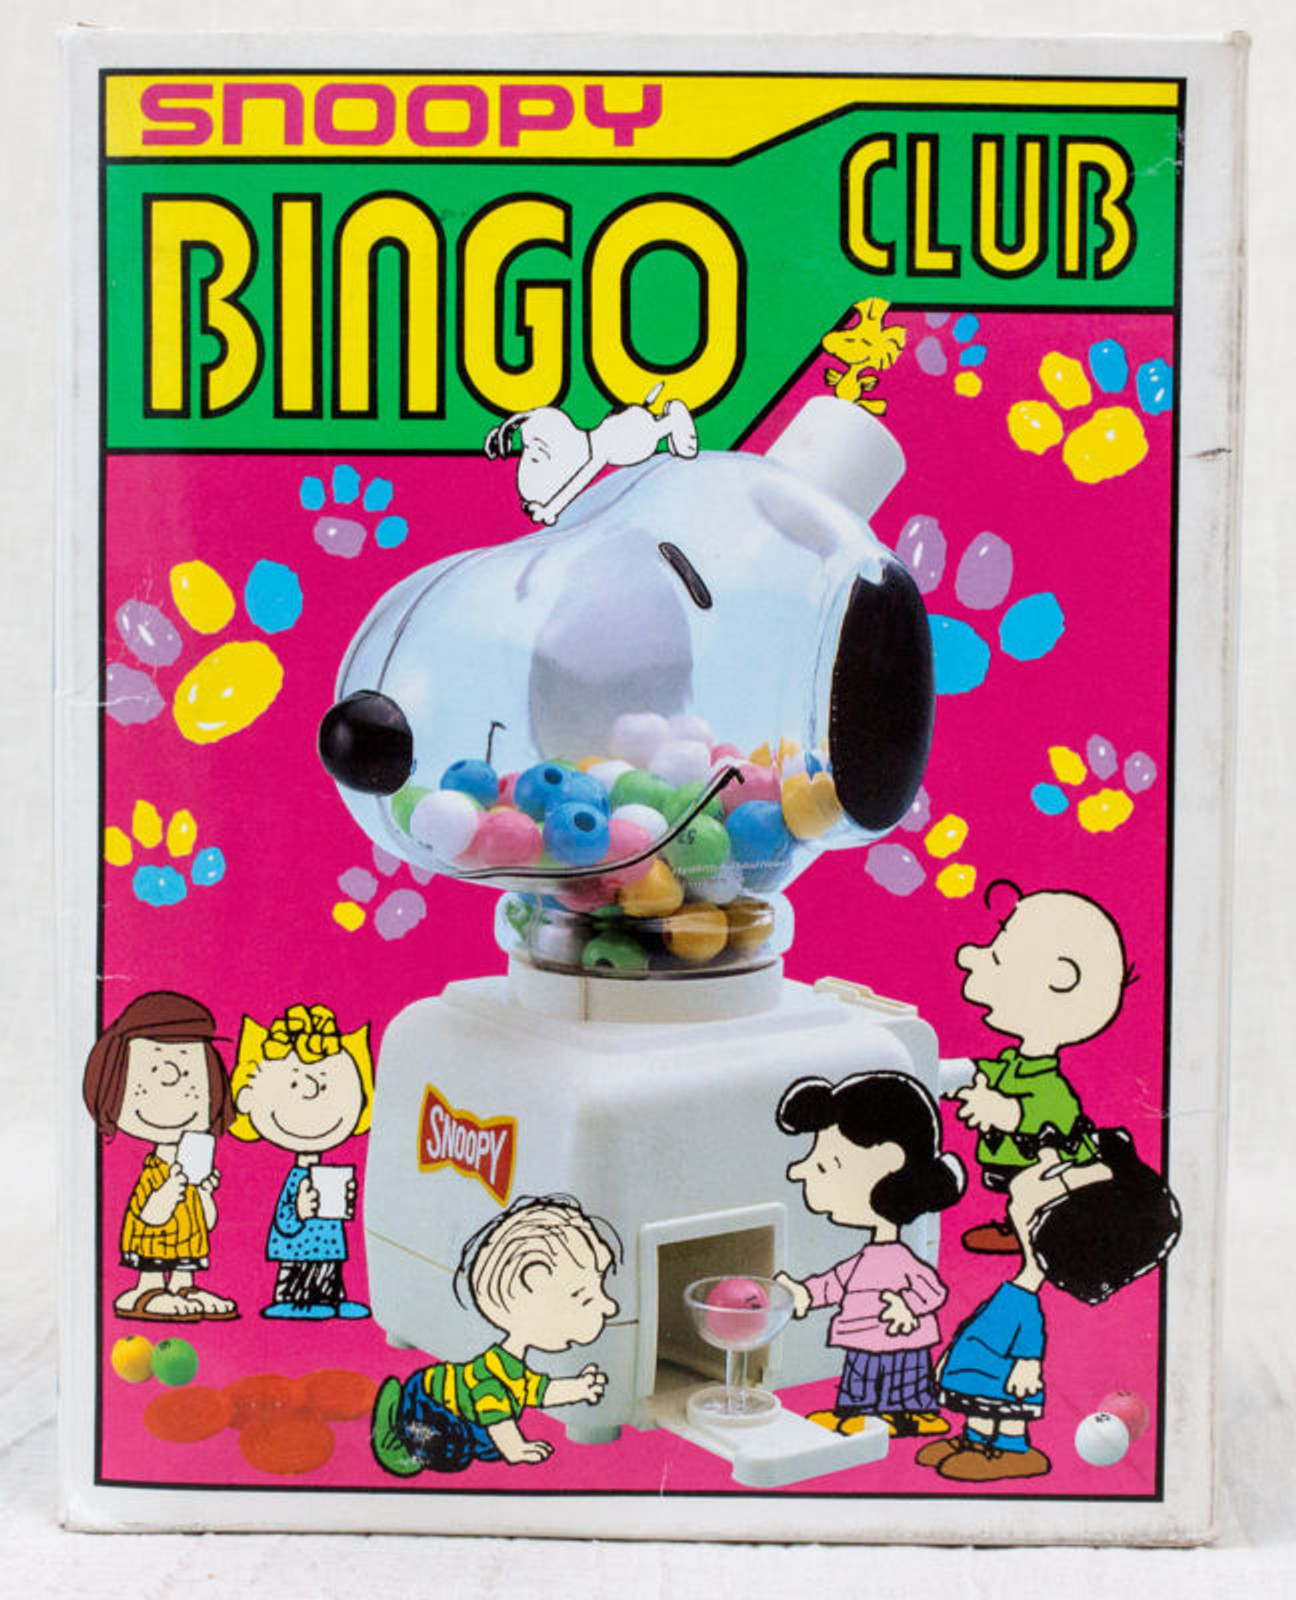 Snoopy Bingo Club Mini Game Toy Peanuts Hanayanama JAPAN ANIME